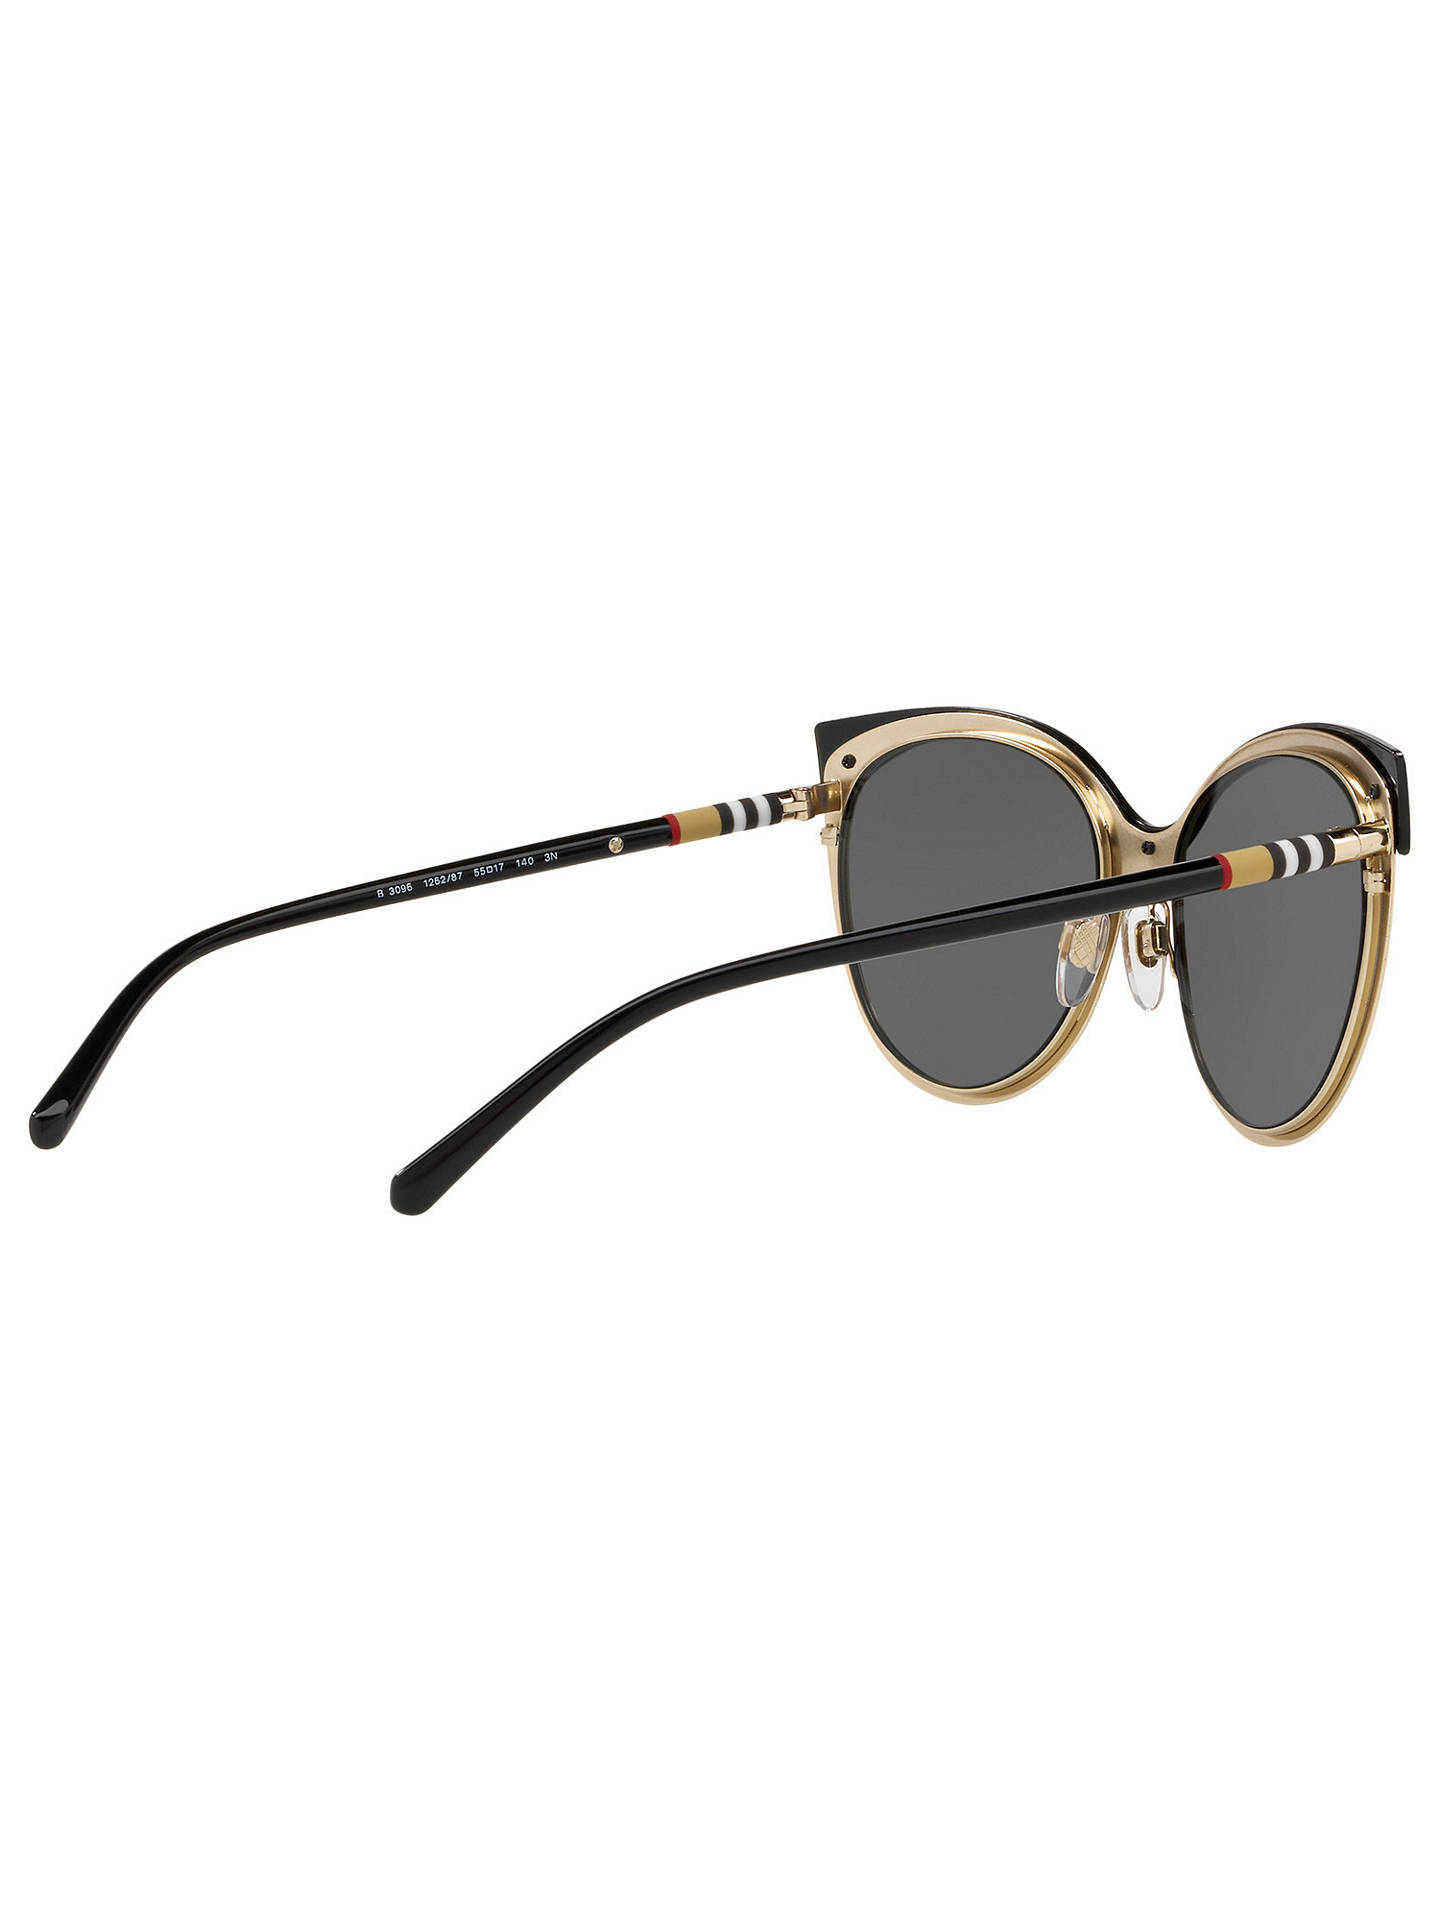 BuyBurberry BE3096 Women's Cat's Eye Sunglasses, Black/Grey Online at johnlewis.com